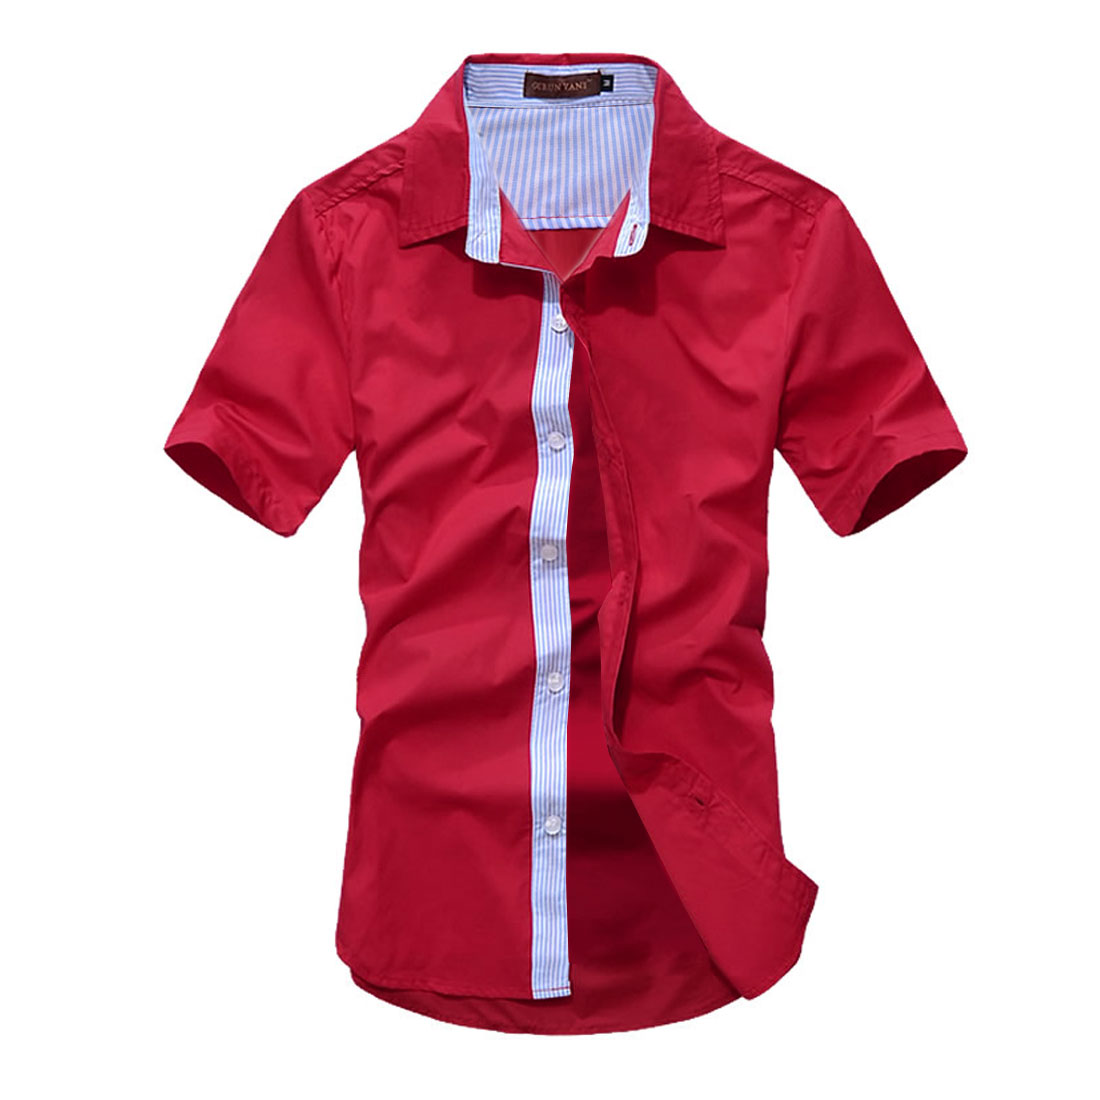 Man Stylish Buttoned Front Stripes Details Modern Shirt Red M